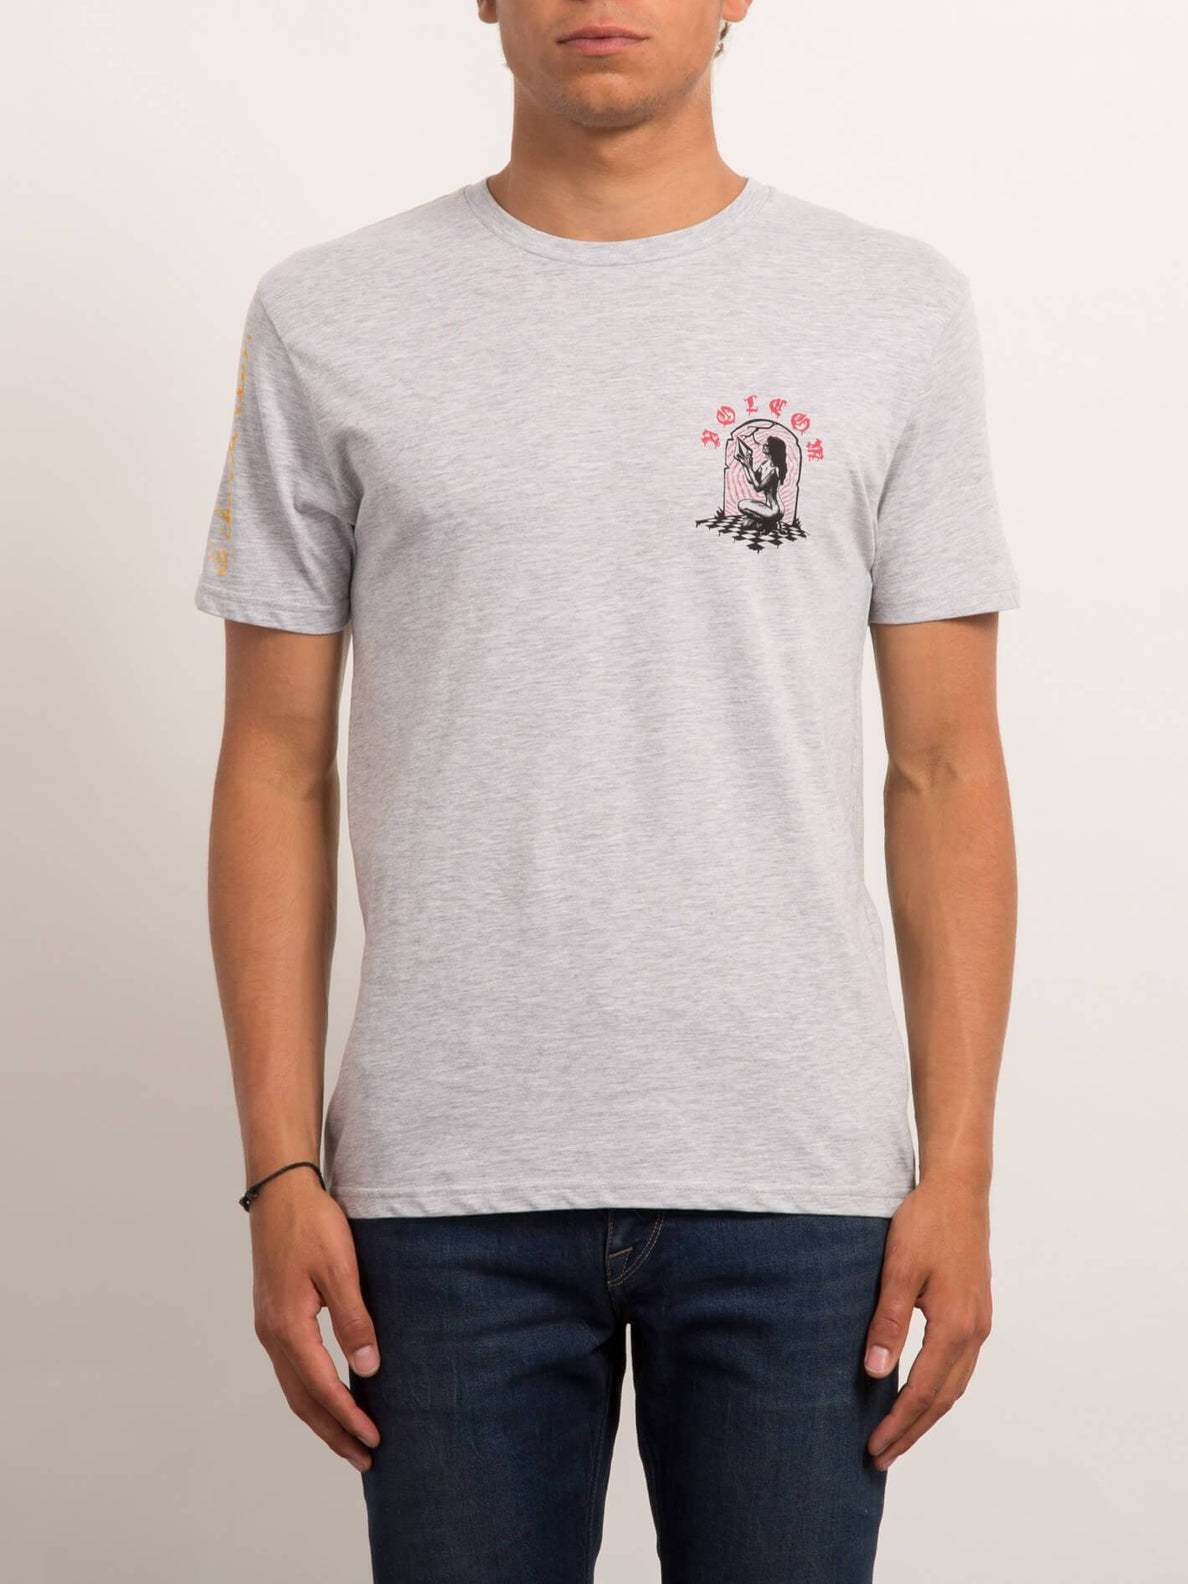 Camiseta de manga corta Stone Lust BSC  - Heather Grey